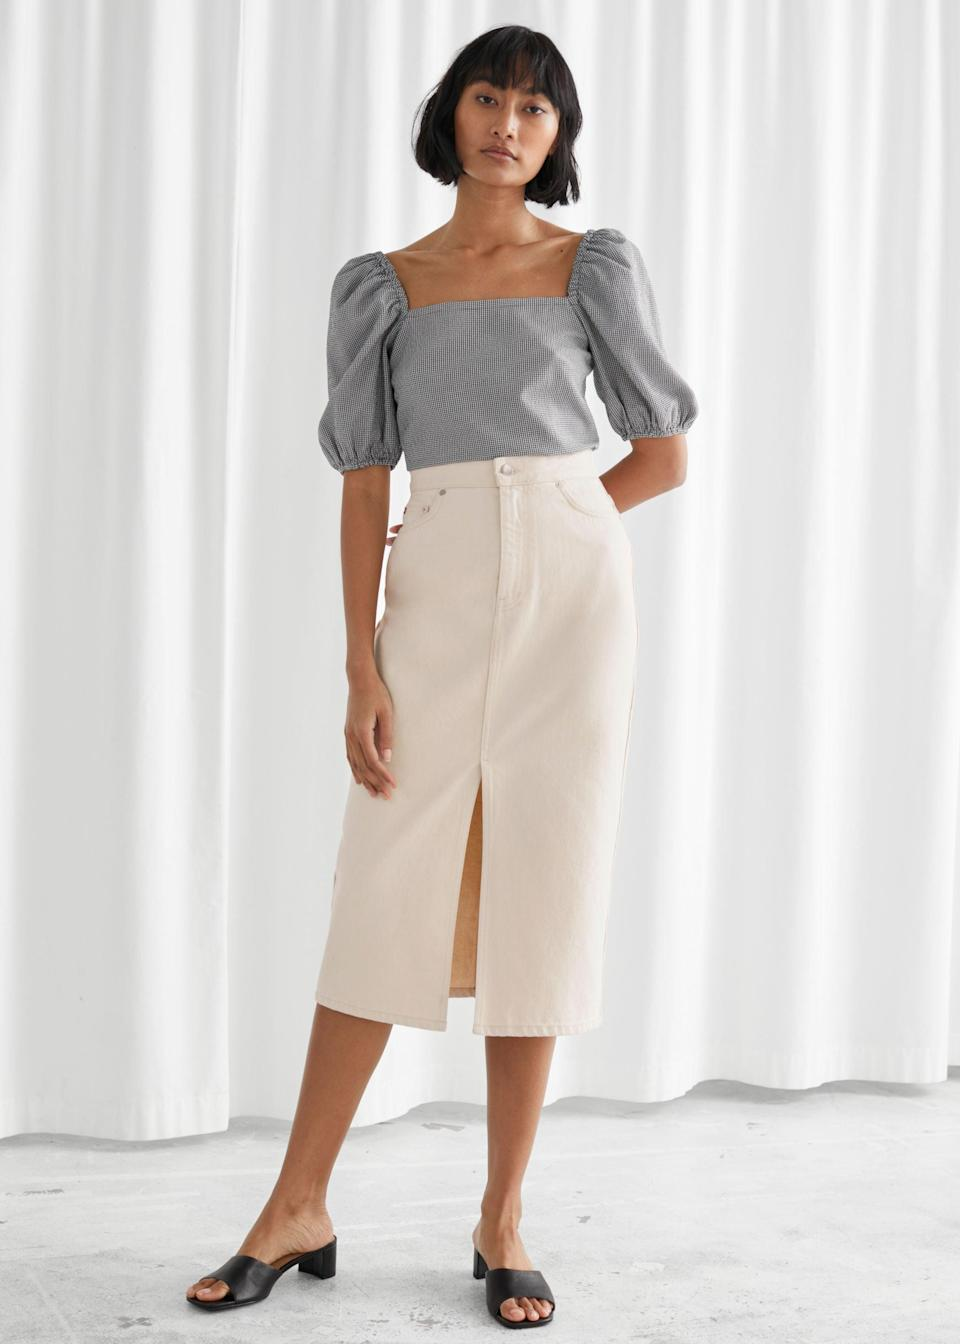 """<br> <br> <strong>& Other Stories</strong> Denim Front Slit Midi Skirt, $, available at <a href=""""https://go.skimresources.com/?id=30283X879131&url=https%3A%2F%2Fwww.stories.com%2Fen_usd%2Fclothing%2Fskirts%2Fdenim-skirts%2Fproduct.denim-front-slit-midi-skirt-white.0864546001.html"""" rel=""""nofollow noopener"""" target=""""_blank"""" data-ylk=""""slk:& Other Stories"""" class=""""link rapid-noclick-resp"""">& Other Stories</a>"""